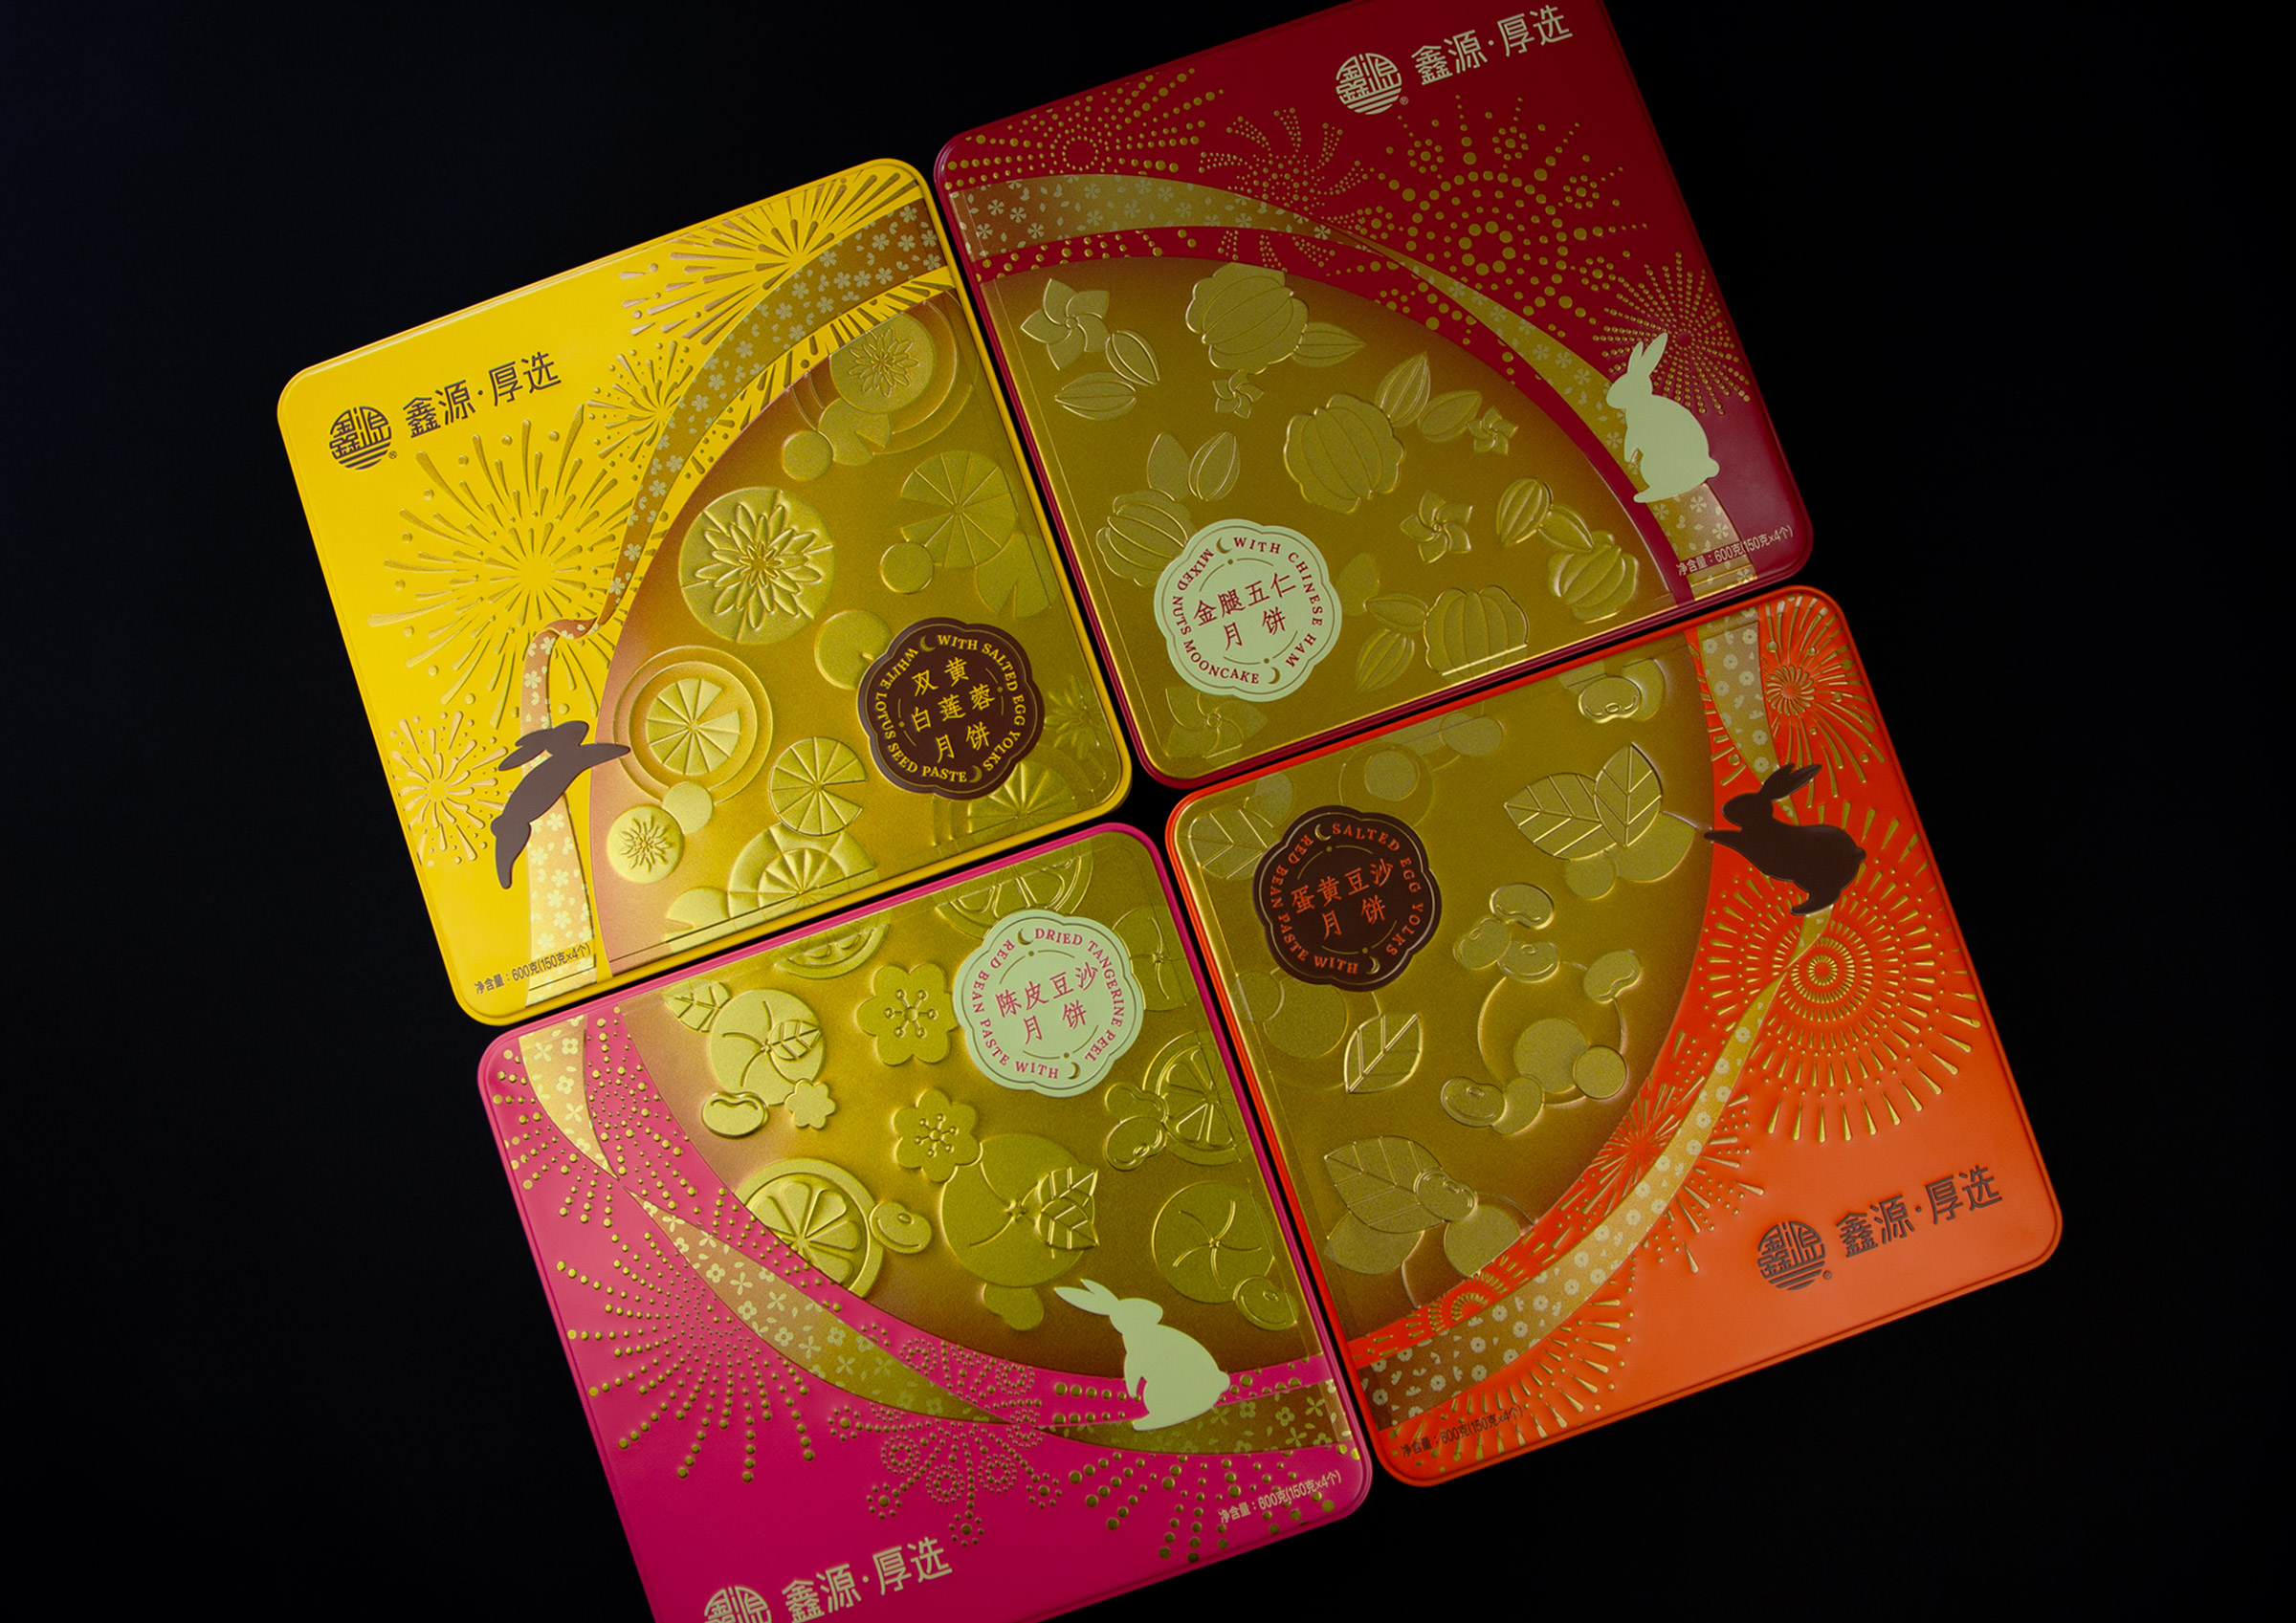 Packaging Design for Xin Yuan Mooncake of Traditional Series by Box Brand Design